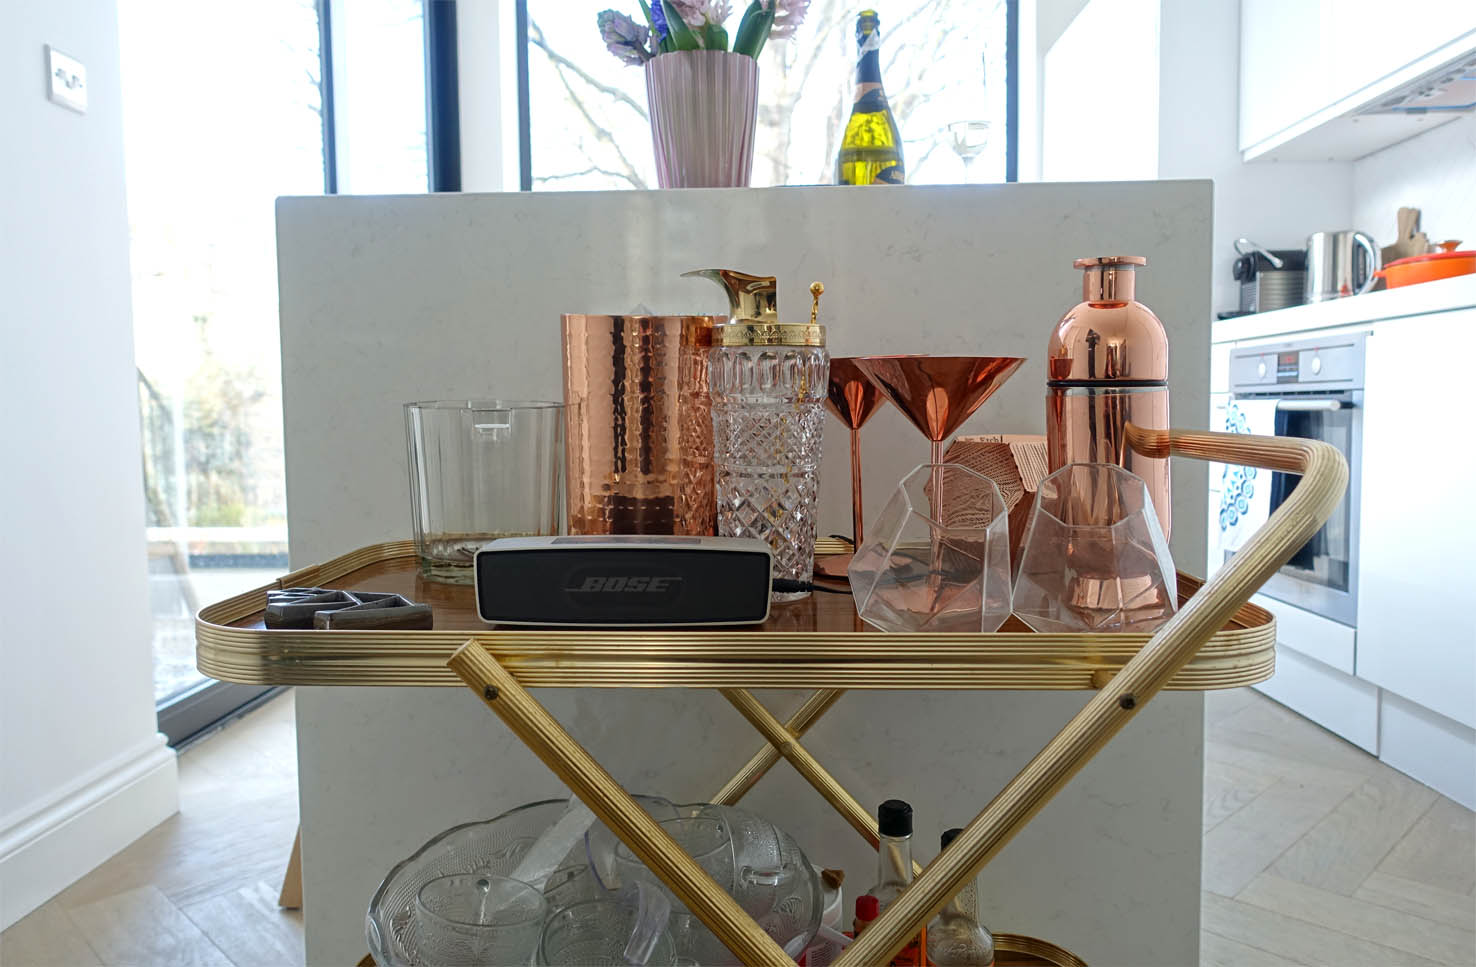 Cocktail equipment in copper at the ready.